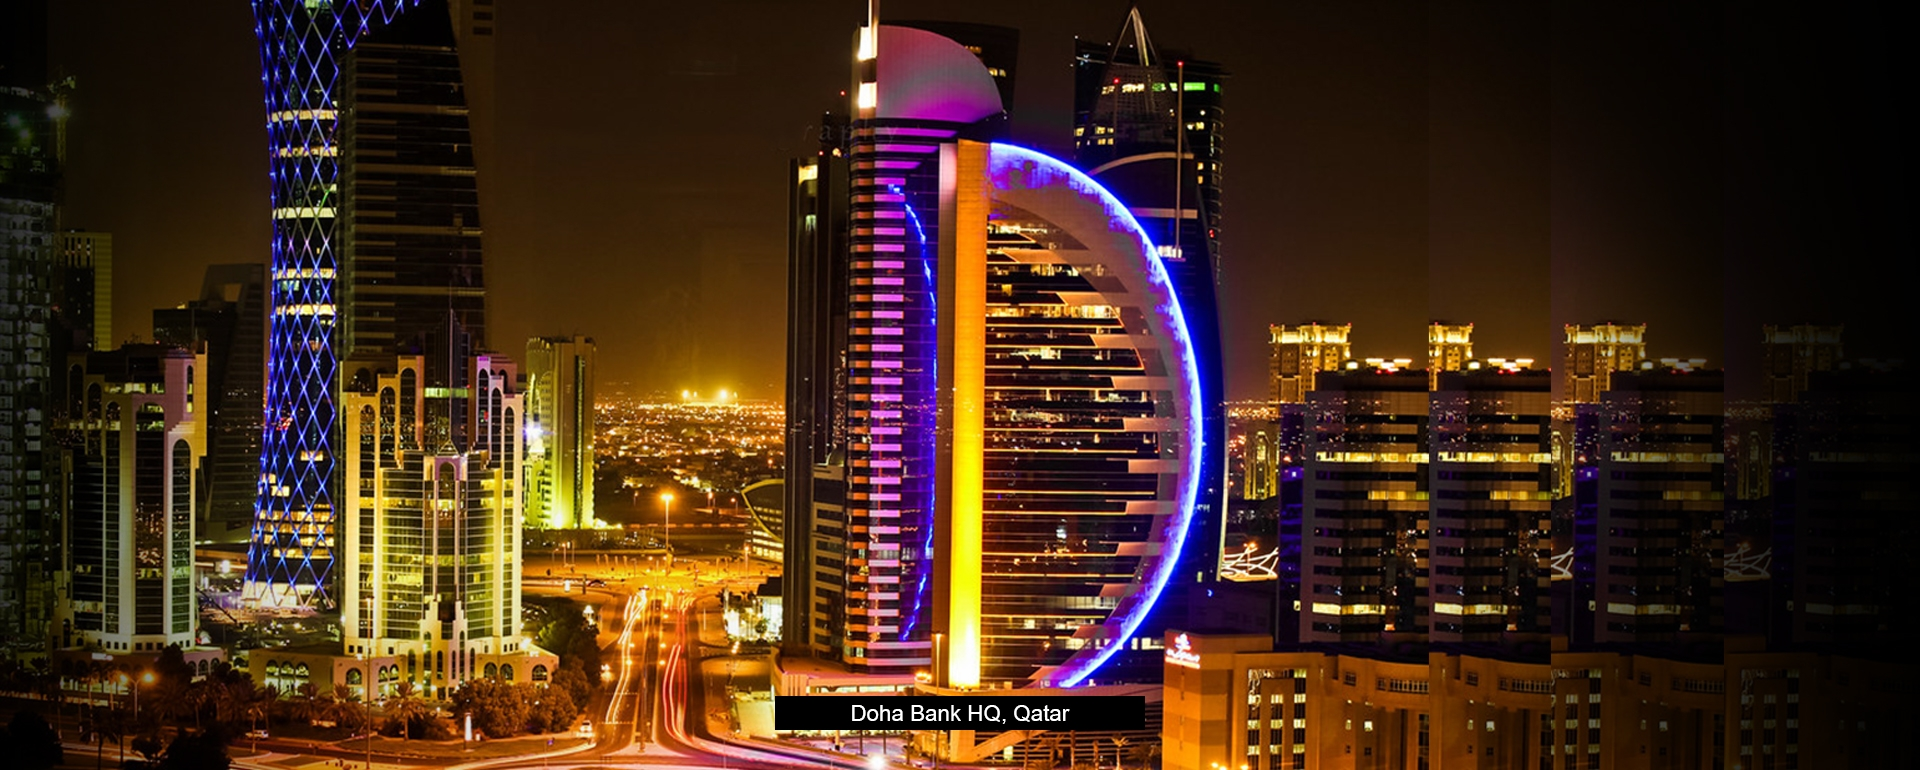 Doha Bank HQ